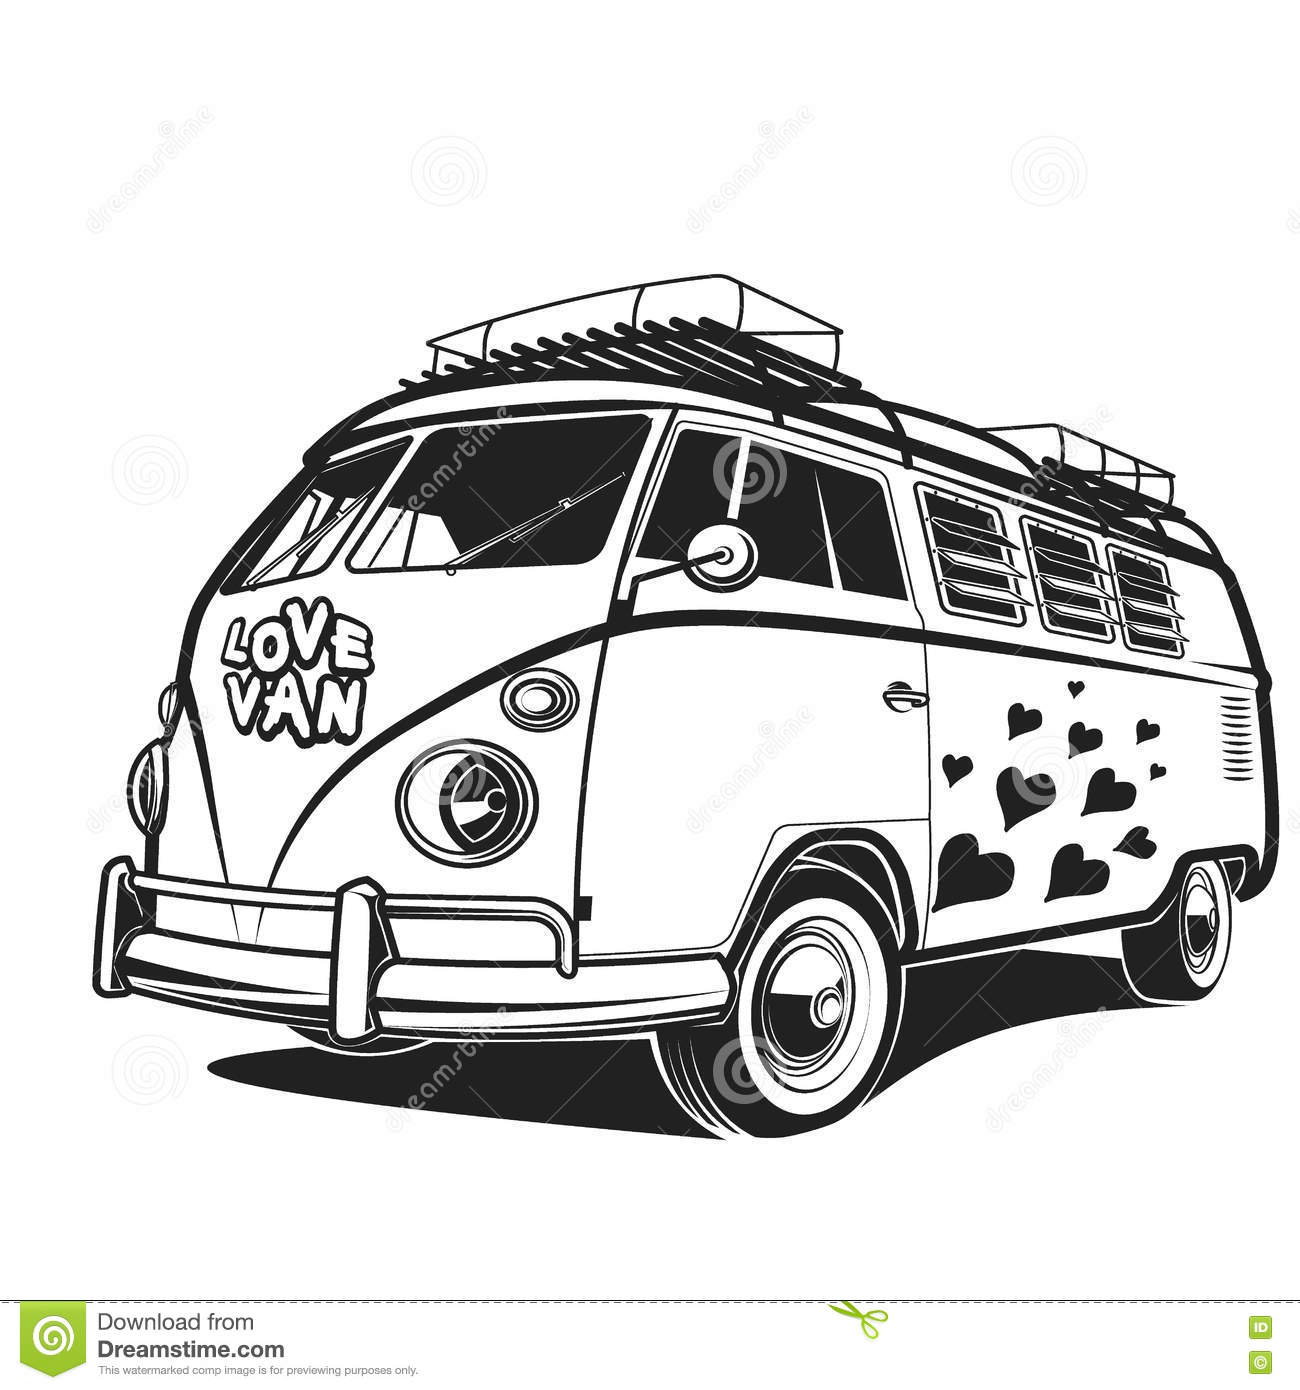 Retro Car Peace Love Travel Van Vector Illustration Stock Vector Image 74953853